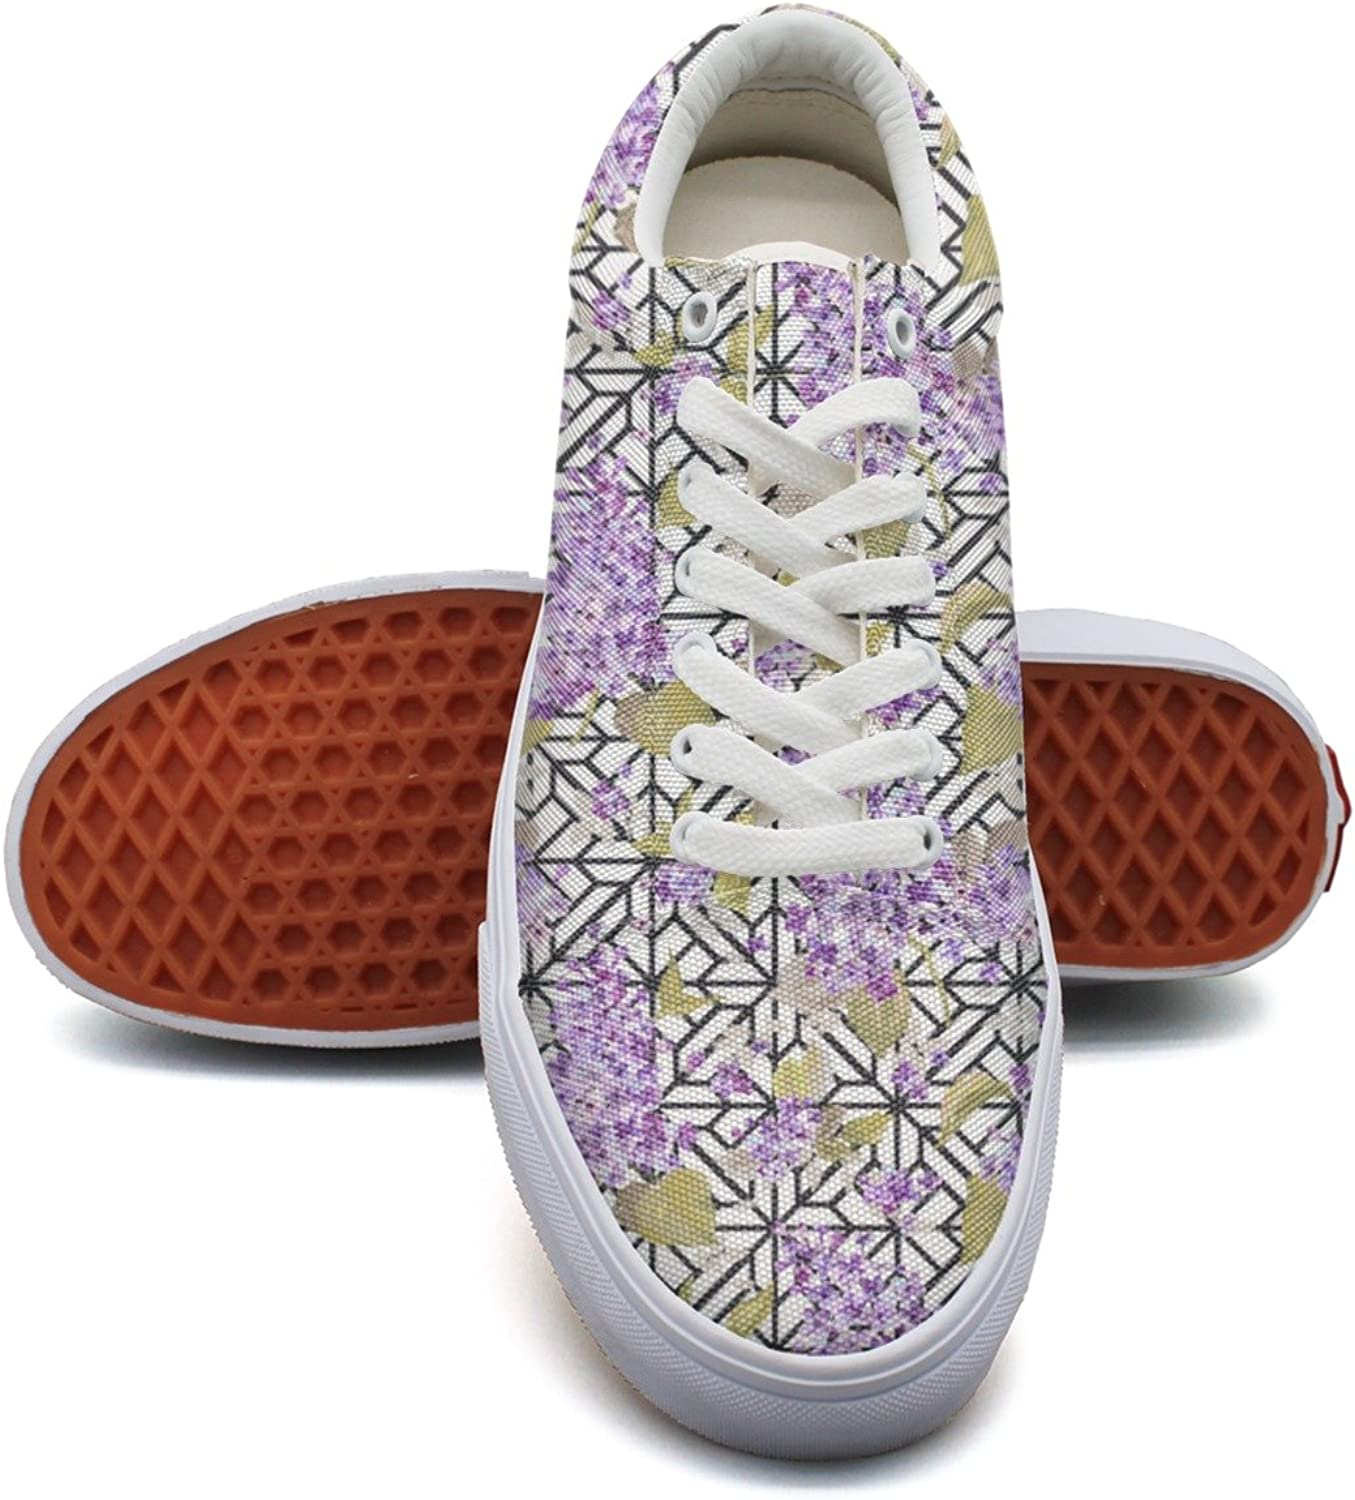 Hjkggd fgfds Casual Purple Wisteria Plant Womens Canvas Sneakers shoes